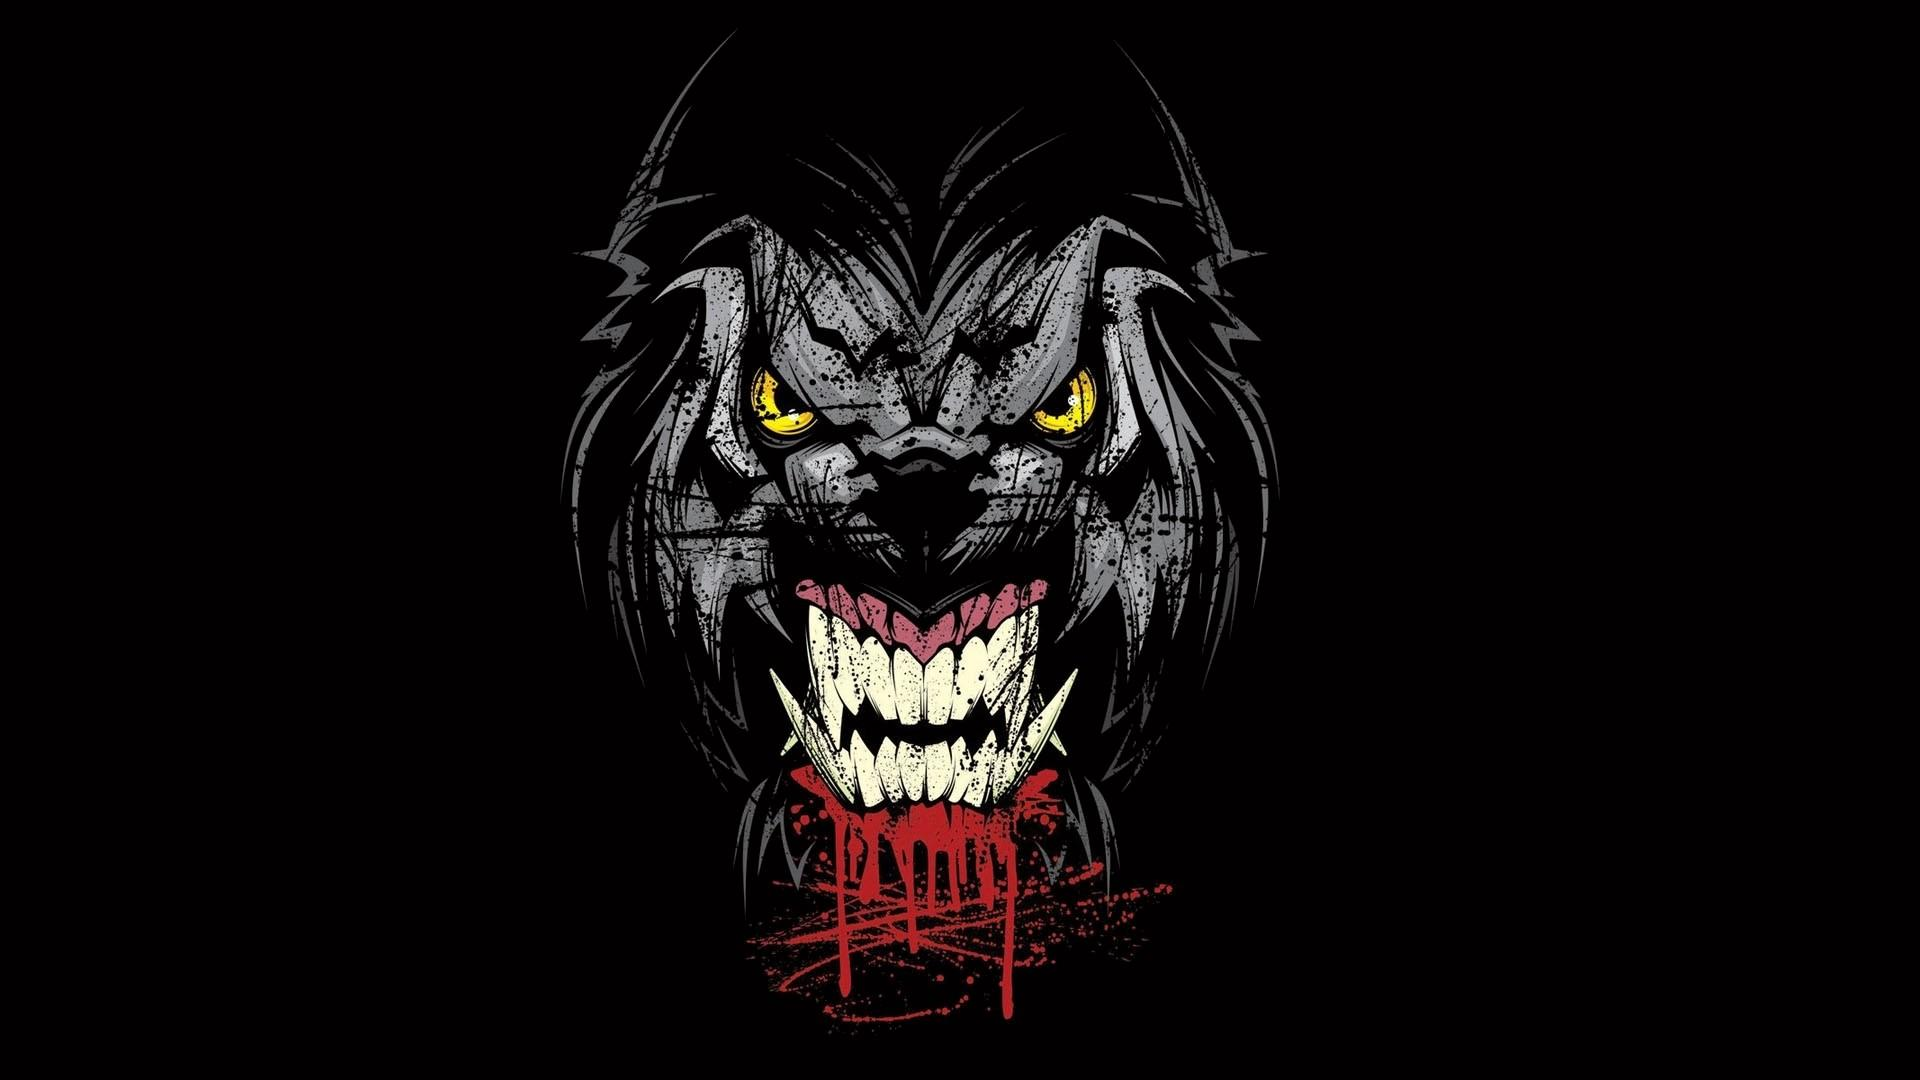 werewolf wallpaper 1920x1080